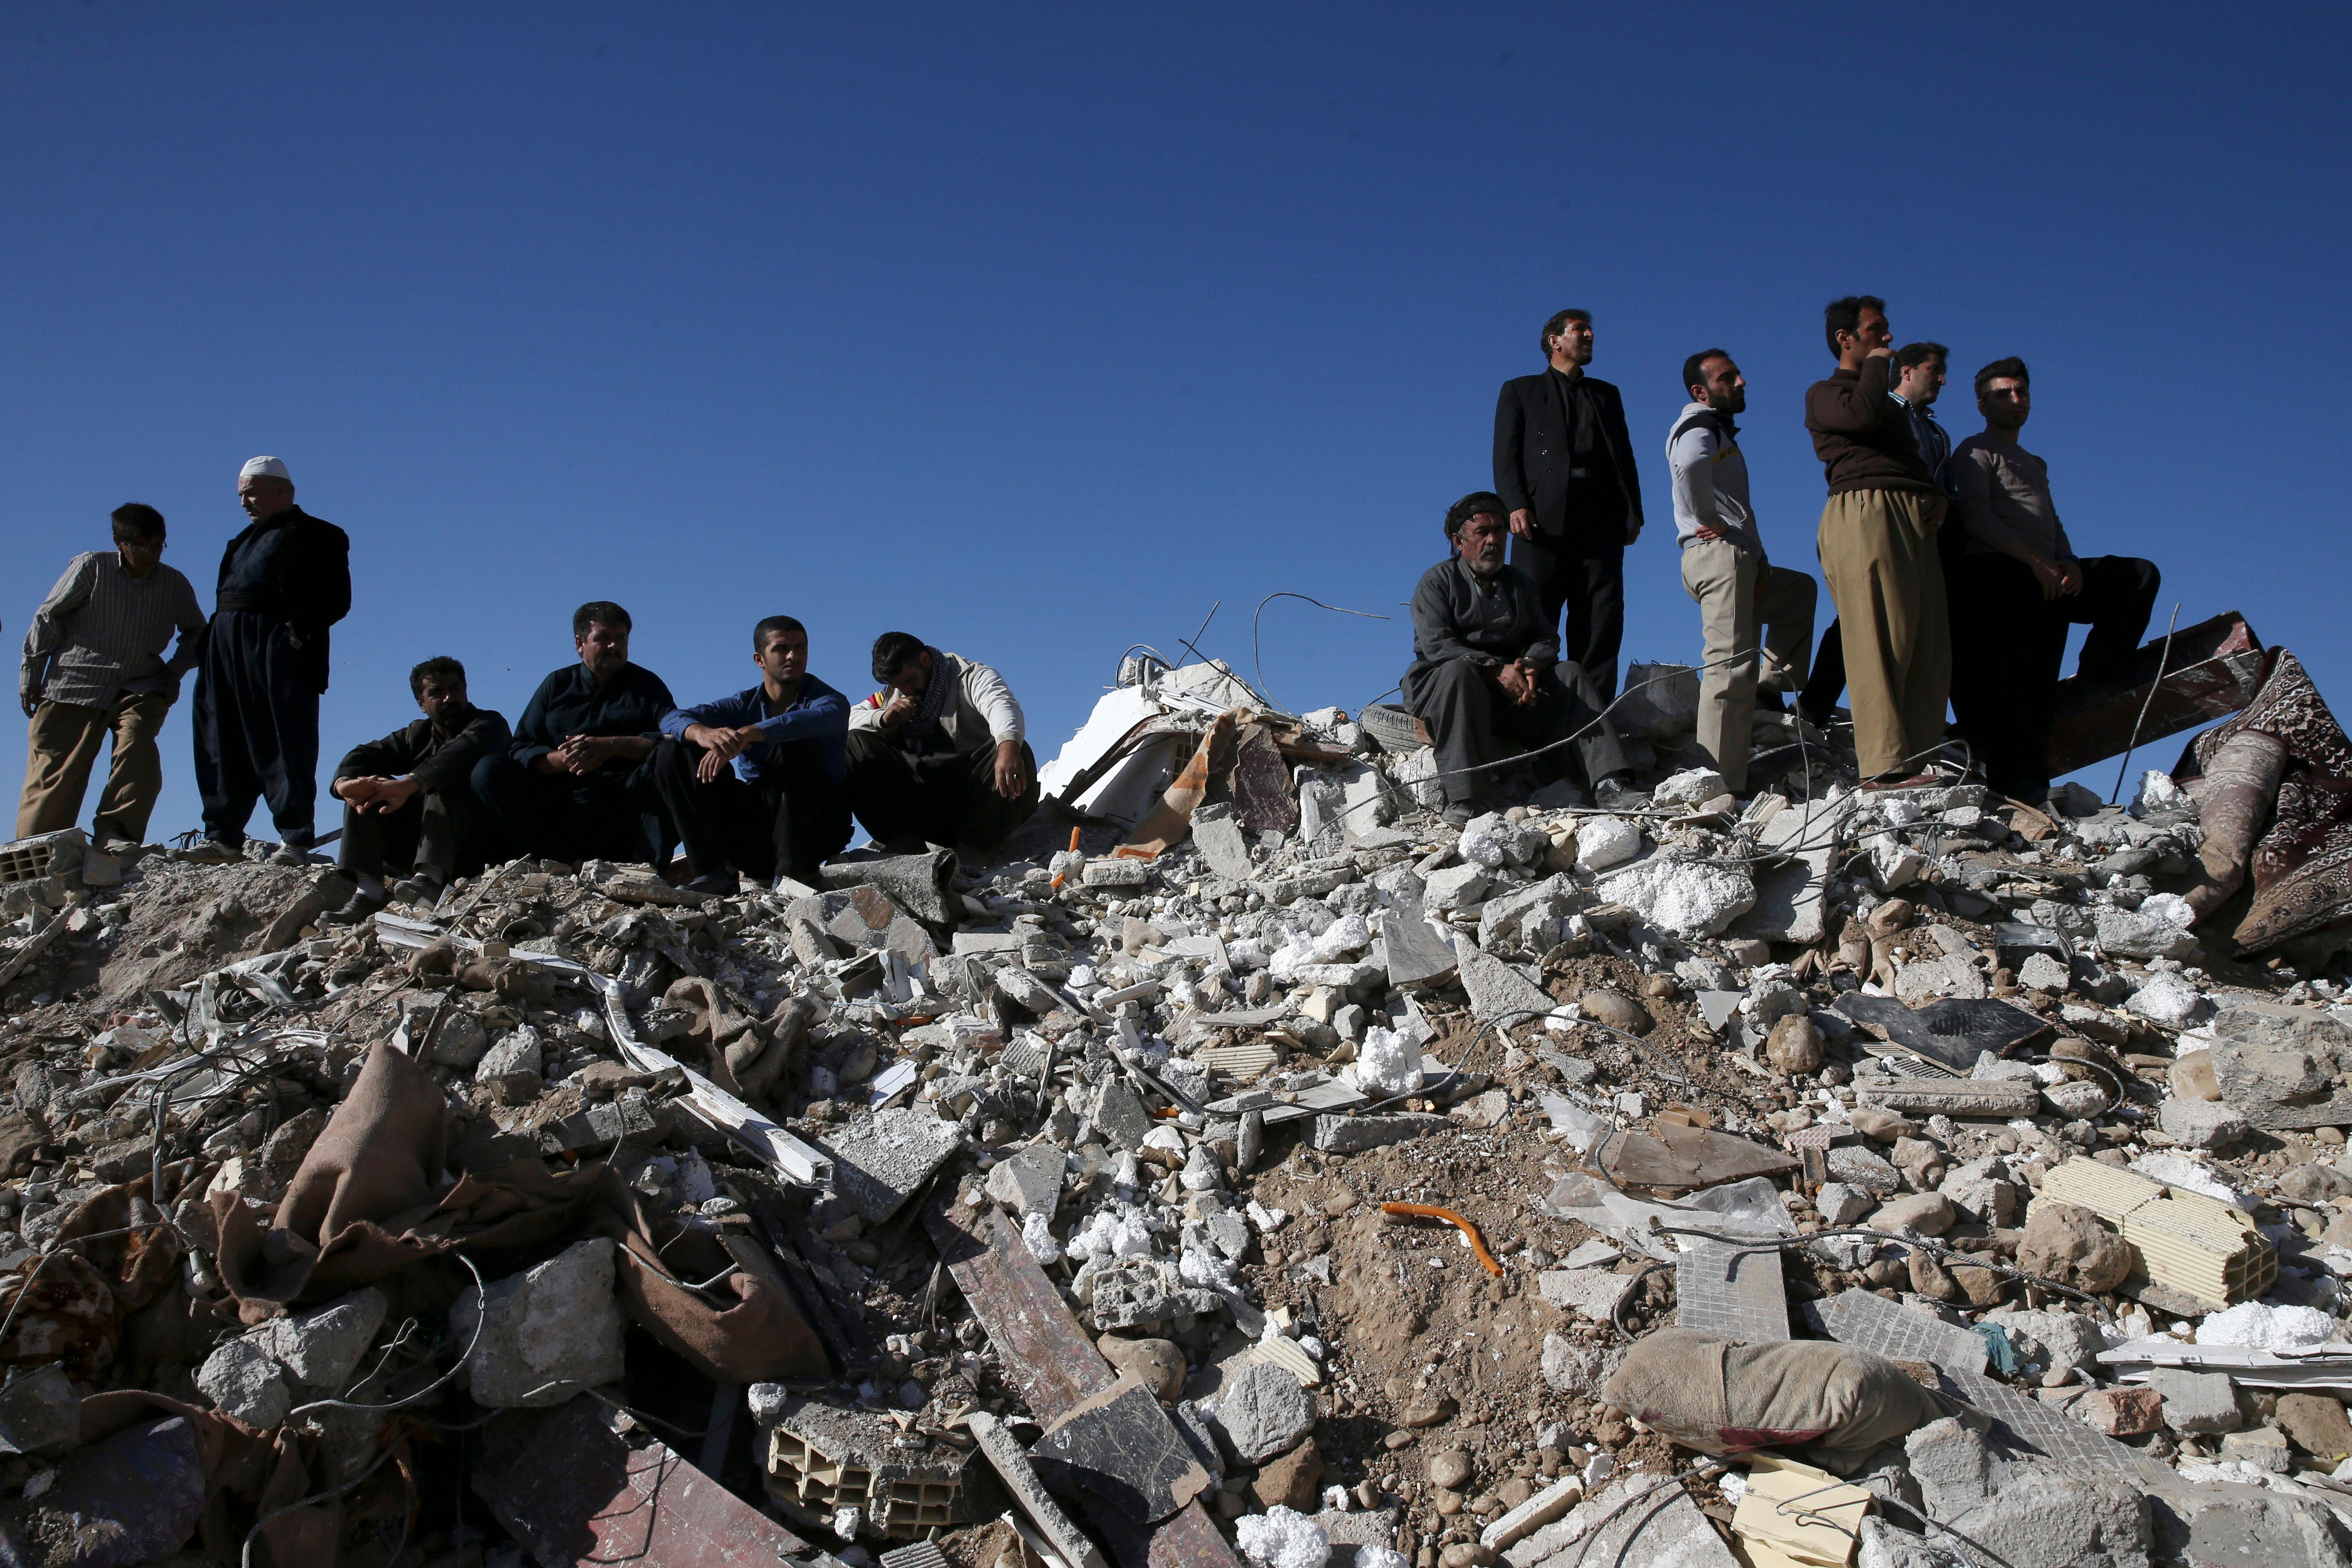 Survivors sit on the debris while rescuers search on the earthquake site in Sarpol-e-Zahab in western Iran, Tuesday, Nov. 14, 2017. Rescuers on Tuesday used backhoes and heavy equipment to dig through the debris of buildings toppled by a powerful earthquake on the border between Iran and Iraq. (AP Photo/Vahid Salemi)